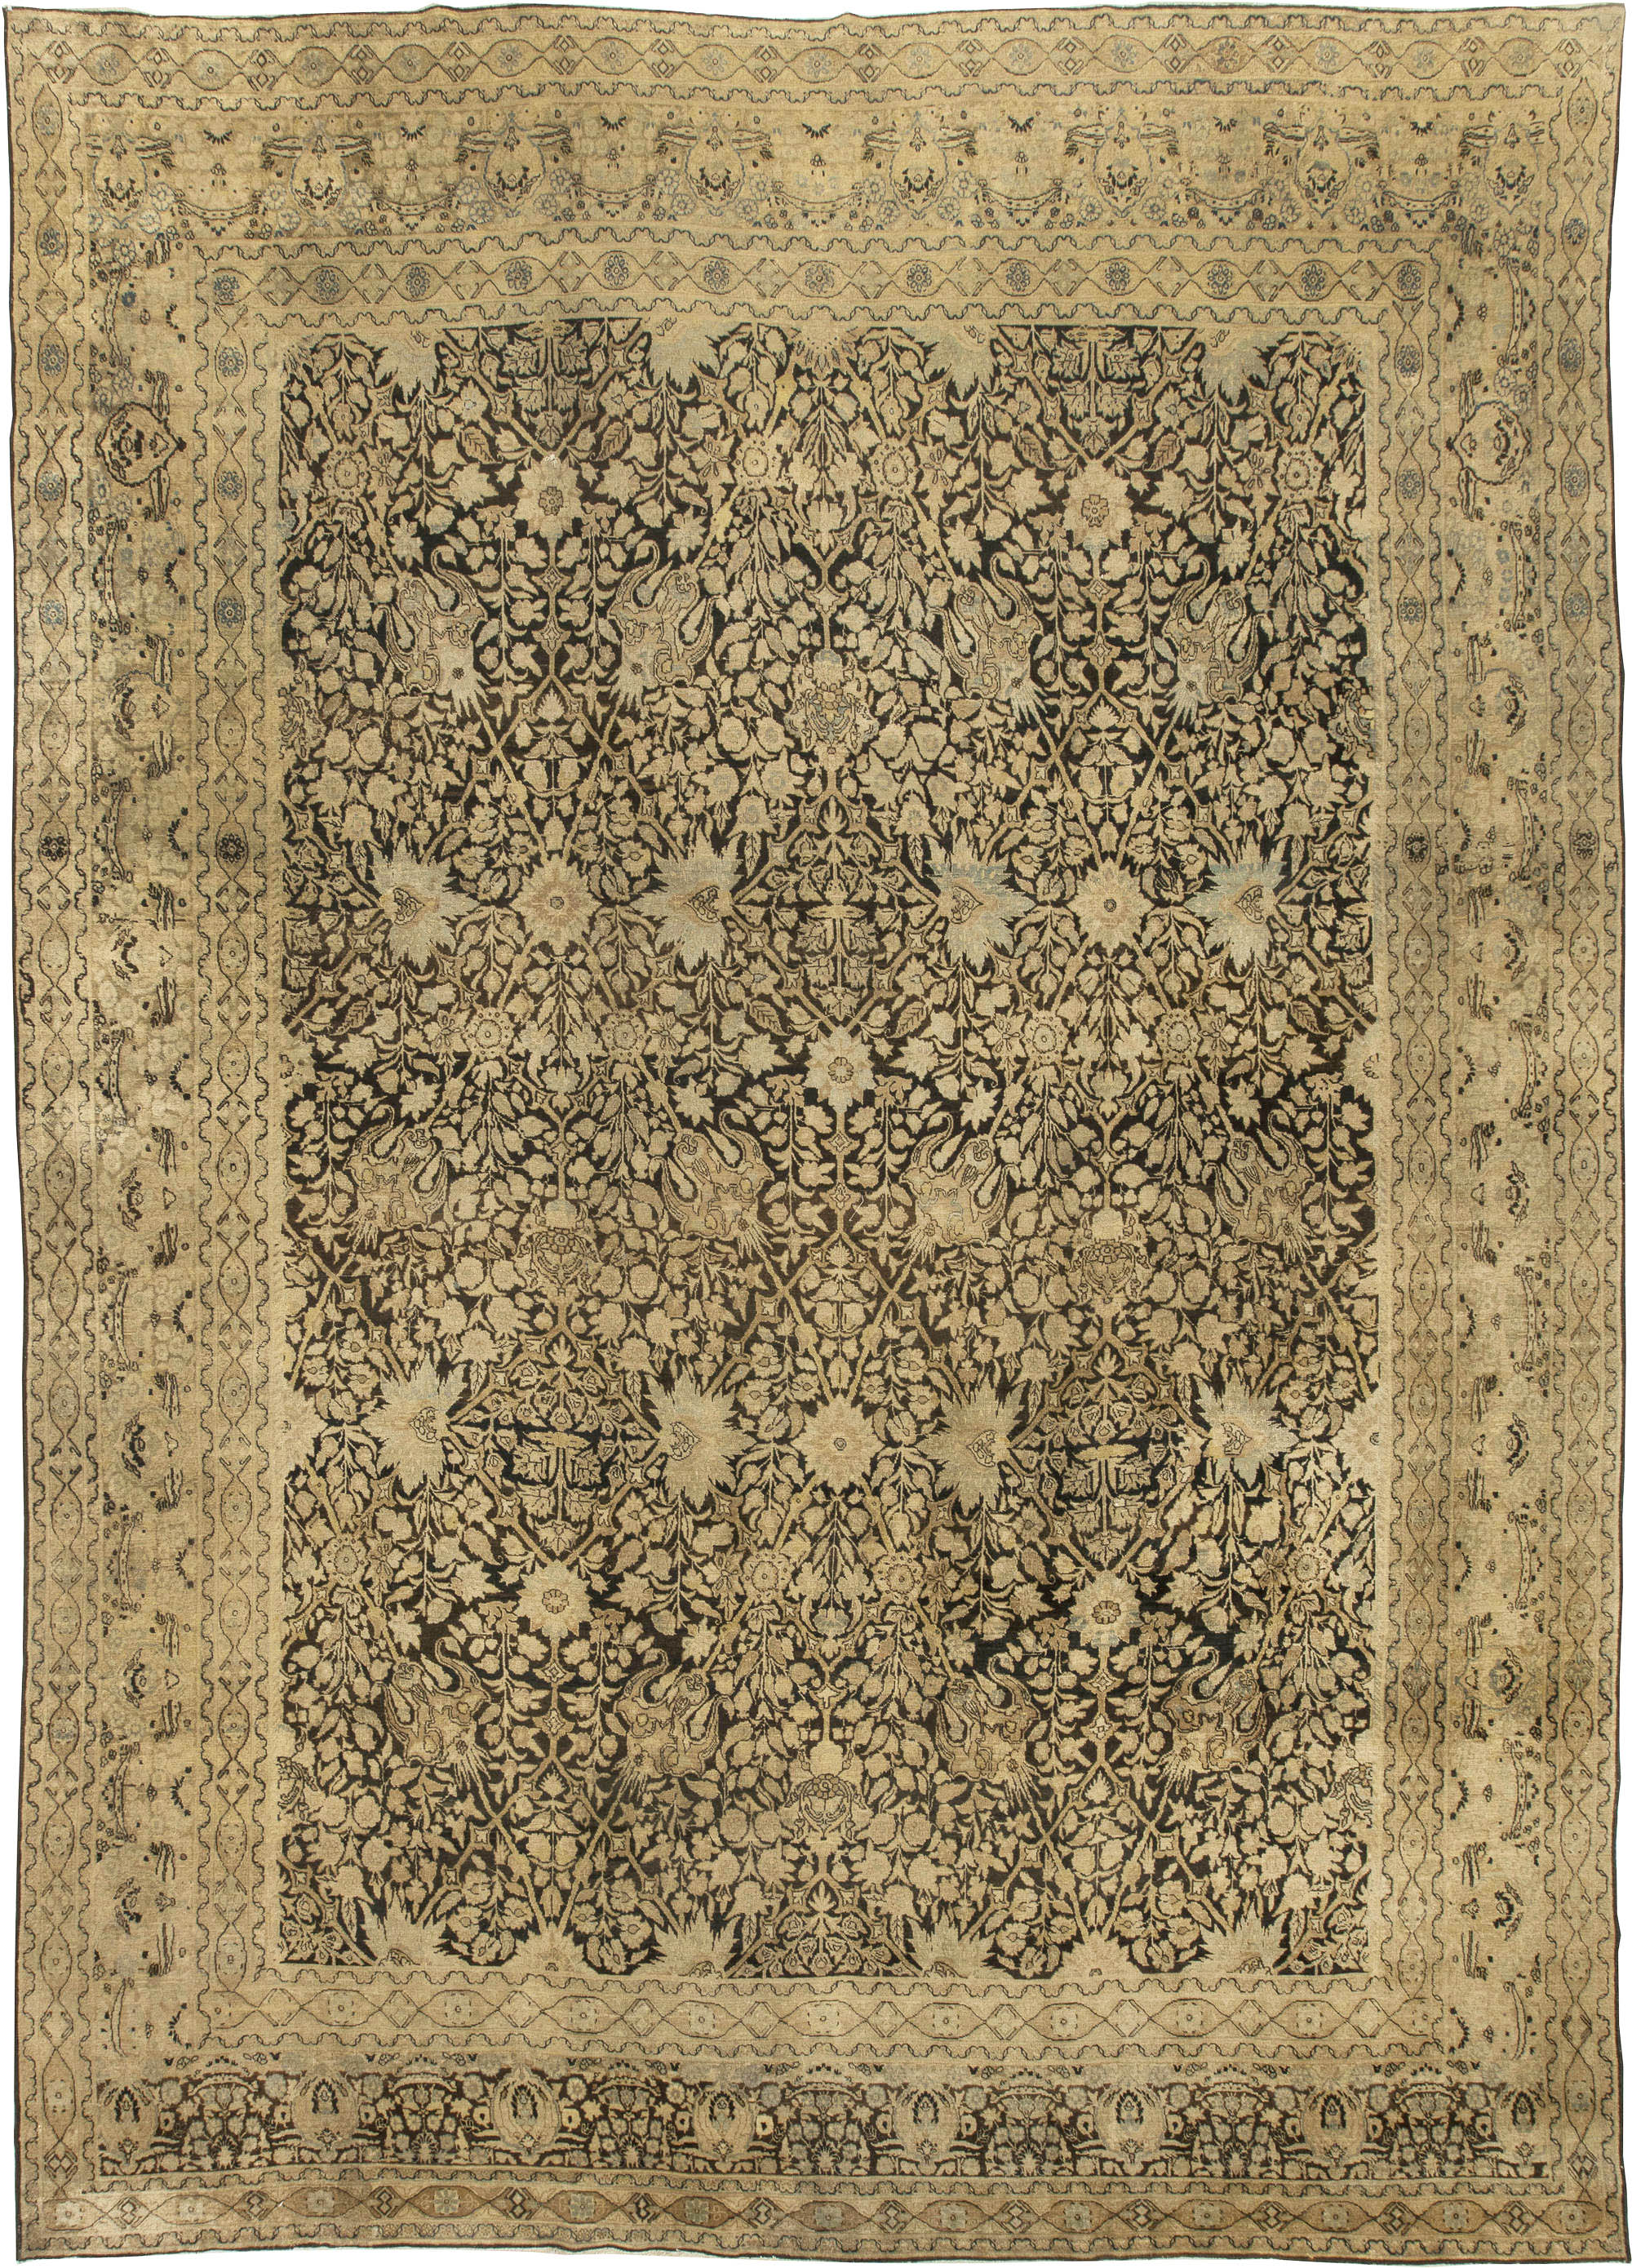 Antique Persian Tabriz Rug BB4355